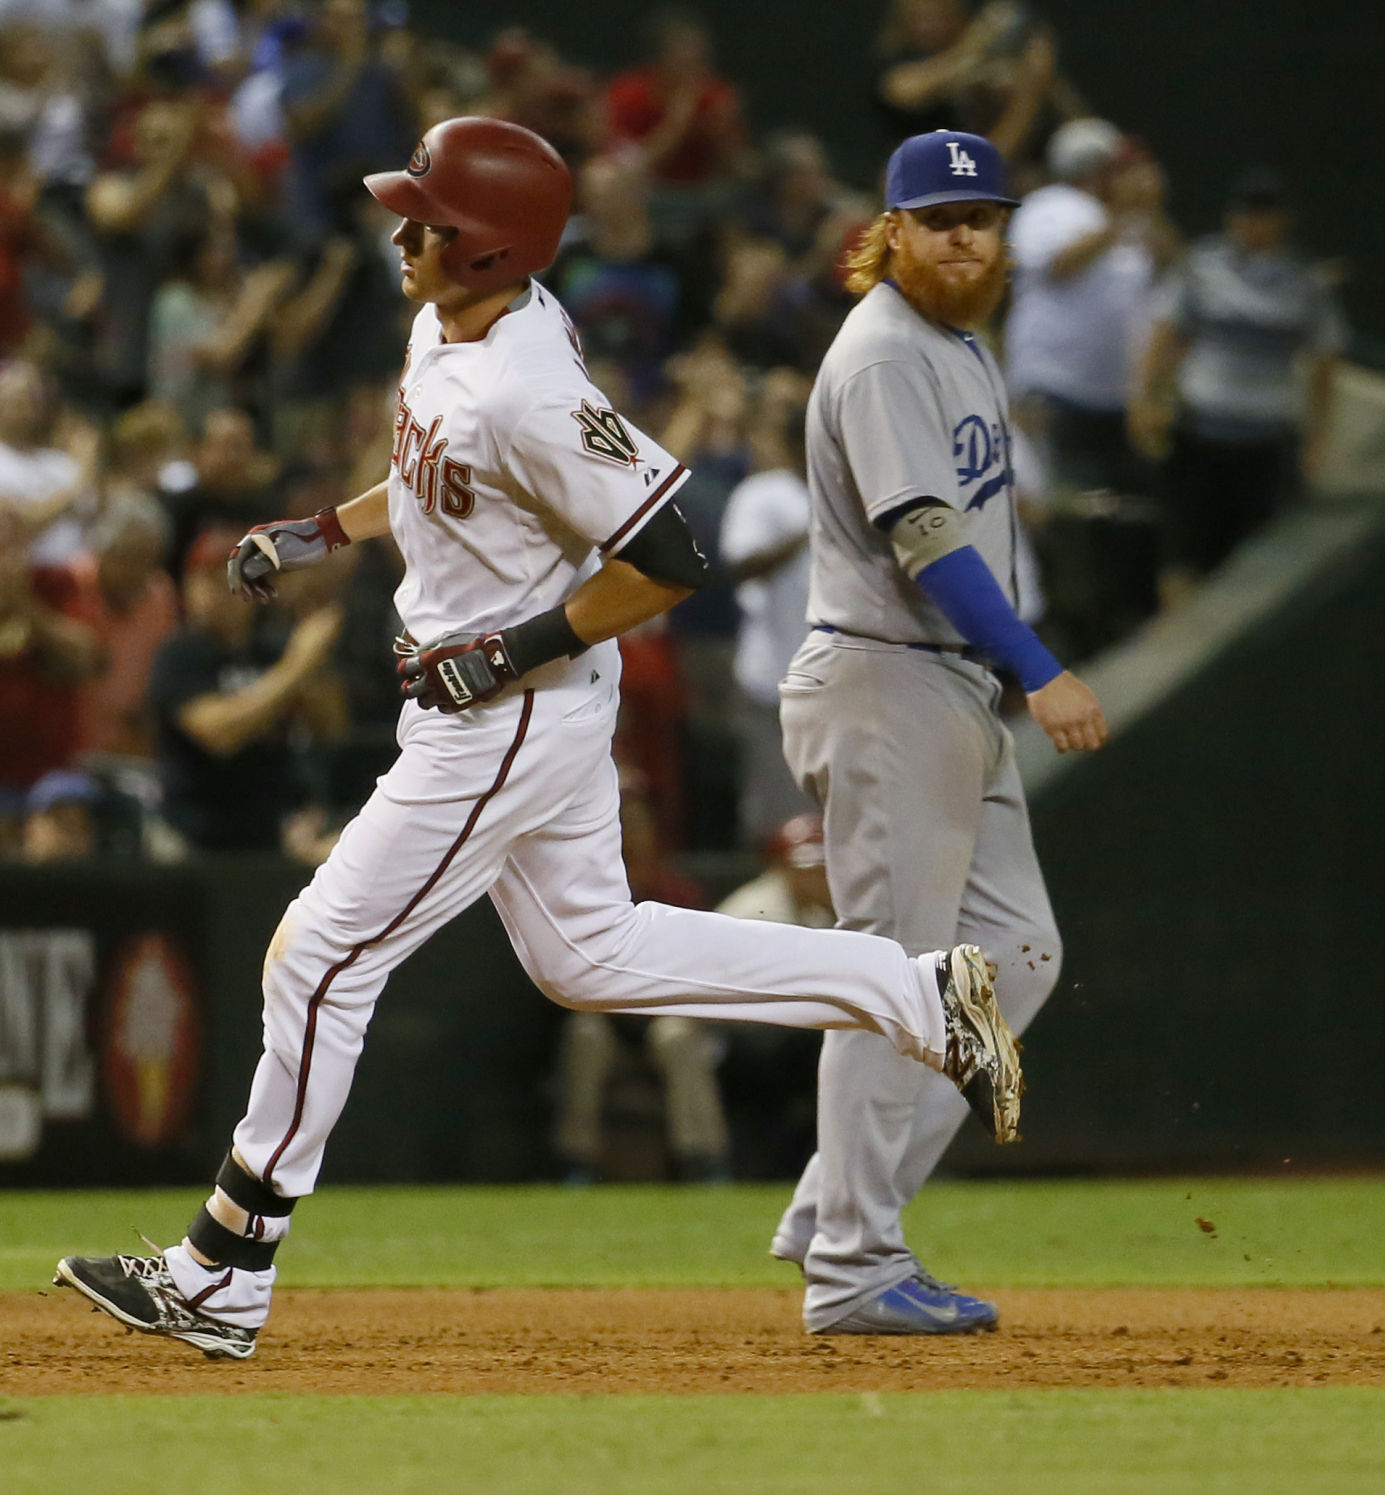 Diamondbacks fall to Dodgers 6-4 in 10 innings